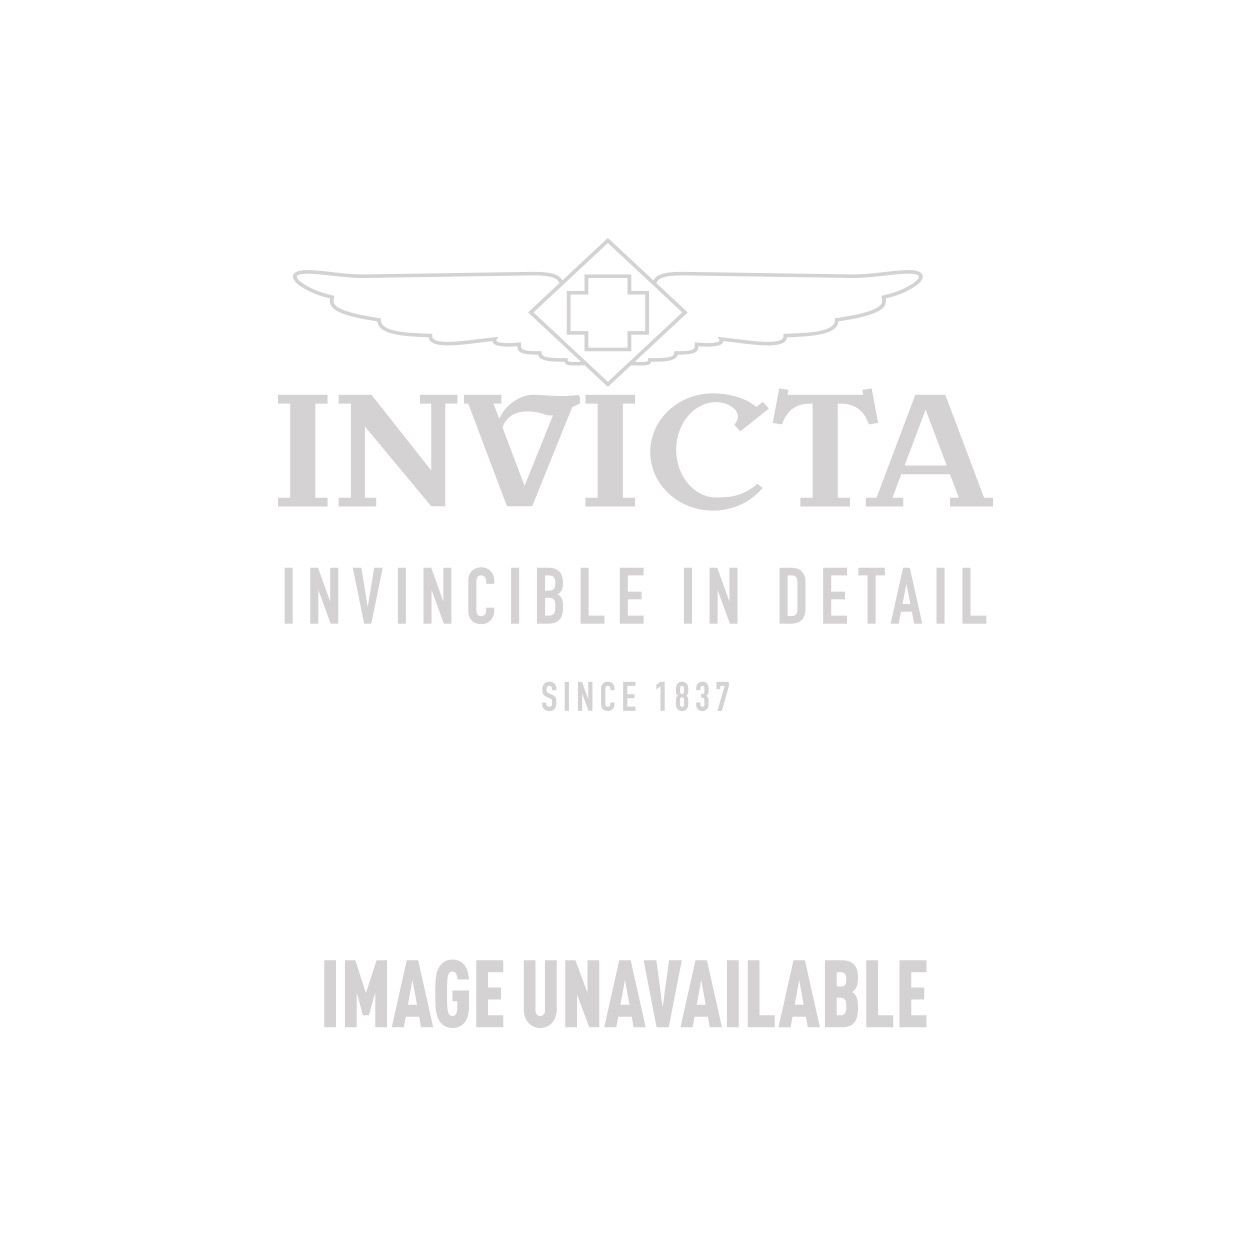 Invicta Specialty Quartz Watch - Stainless Steel case Stainless Steel band - Model 19221